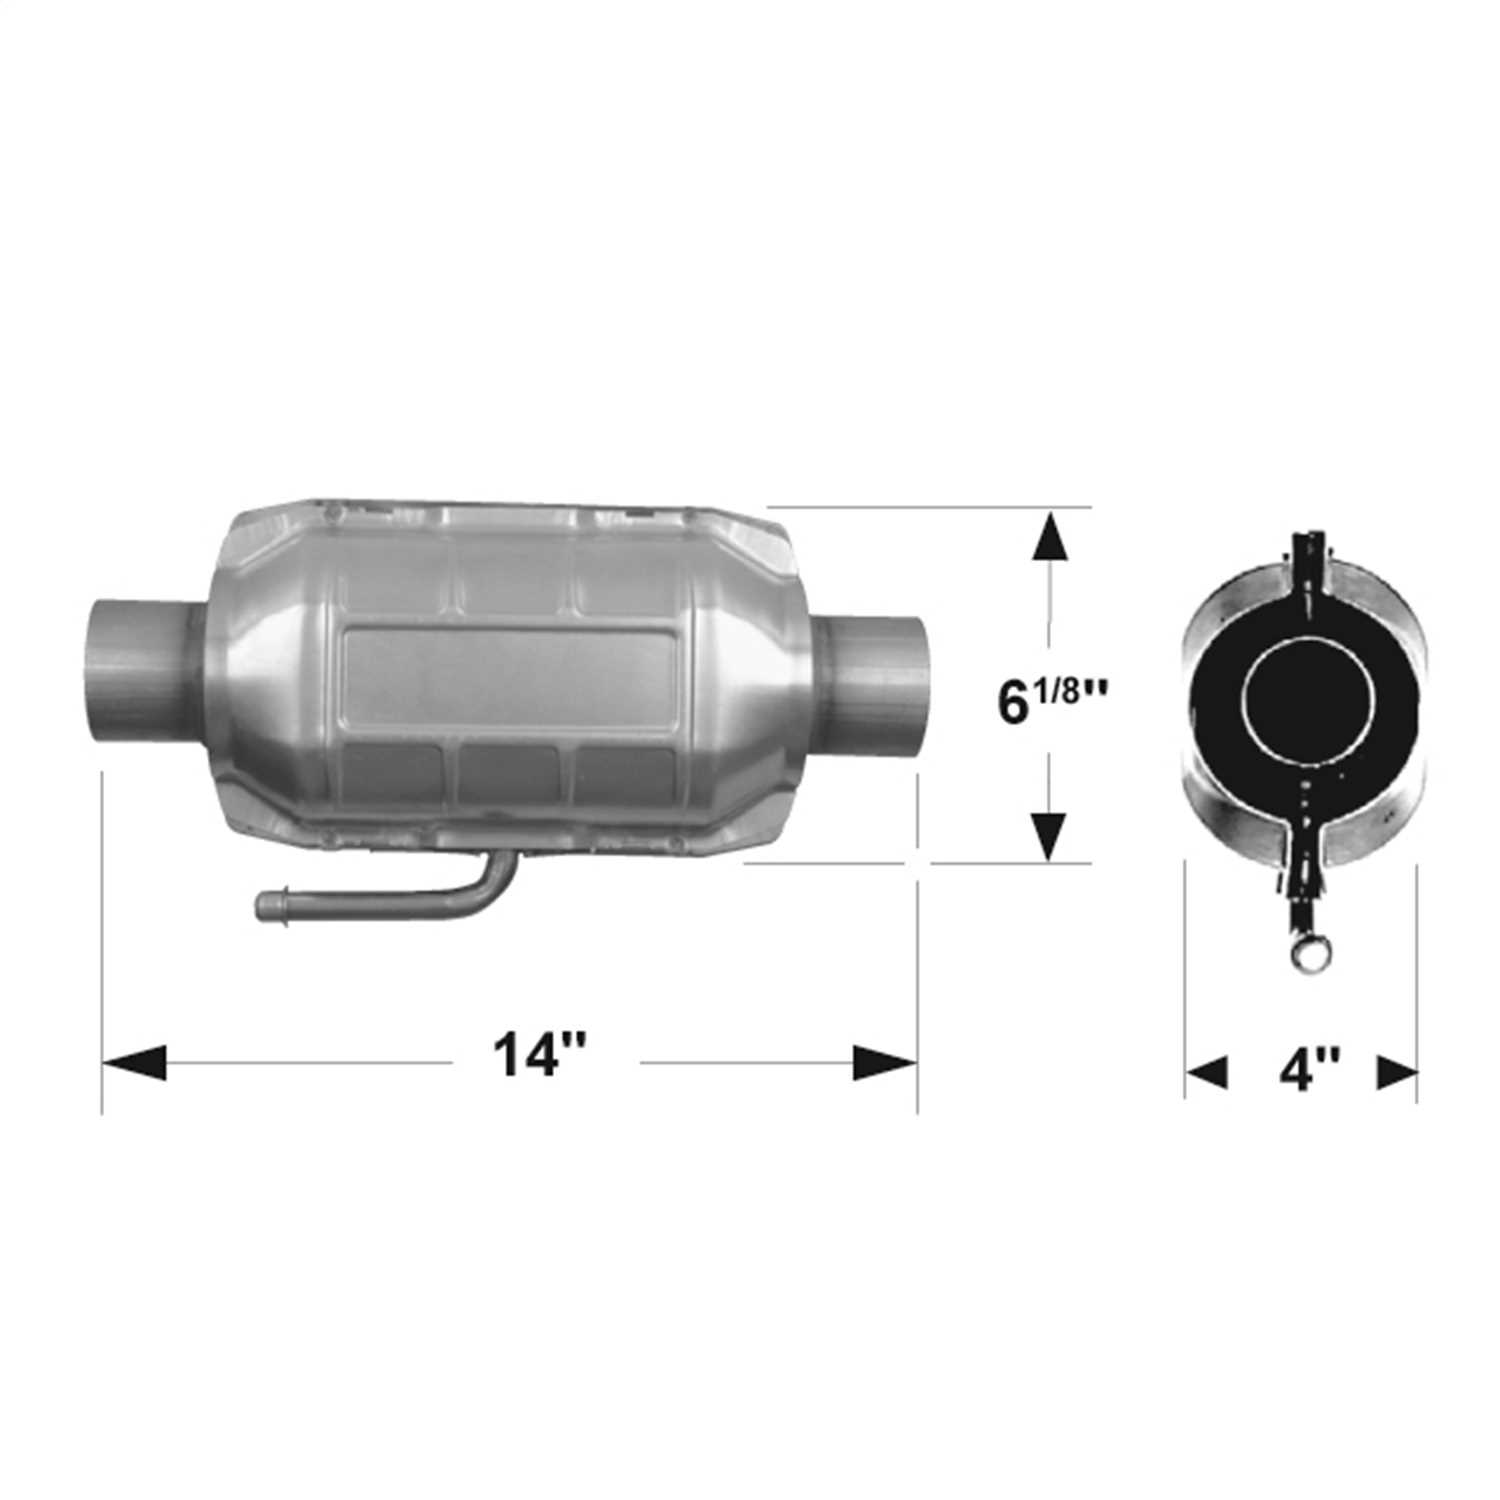 2200124 Flowmaster 49 State Catalytic Converters Universal Catalytic Converter